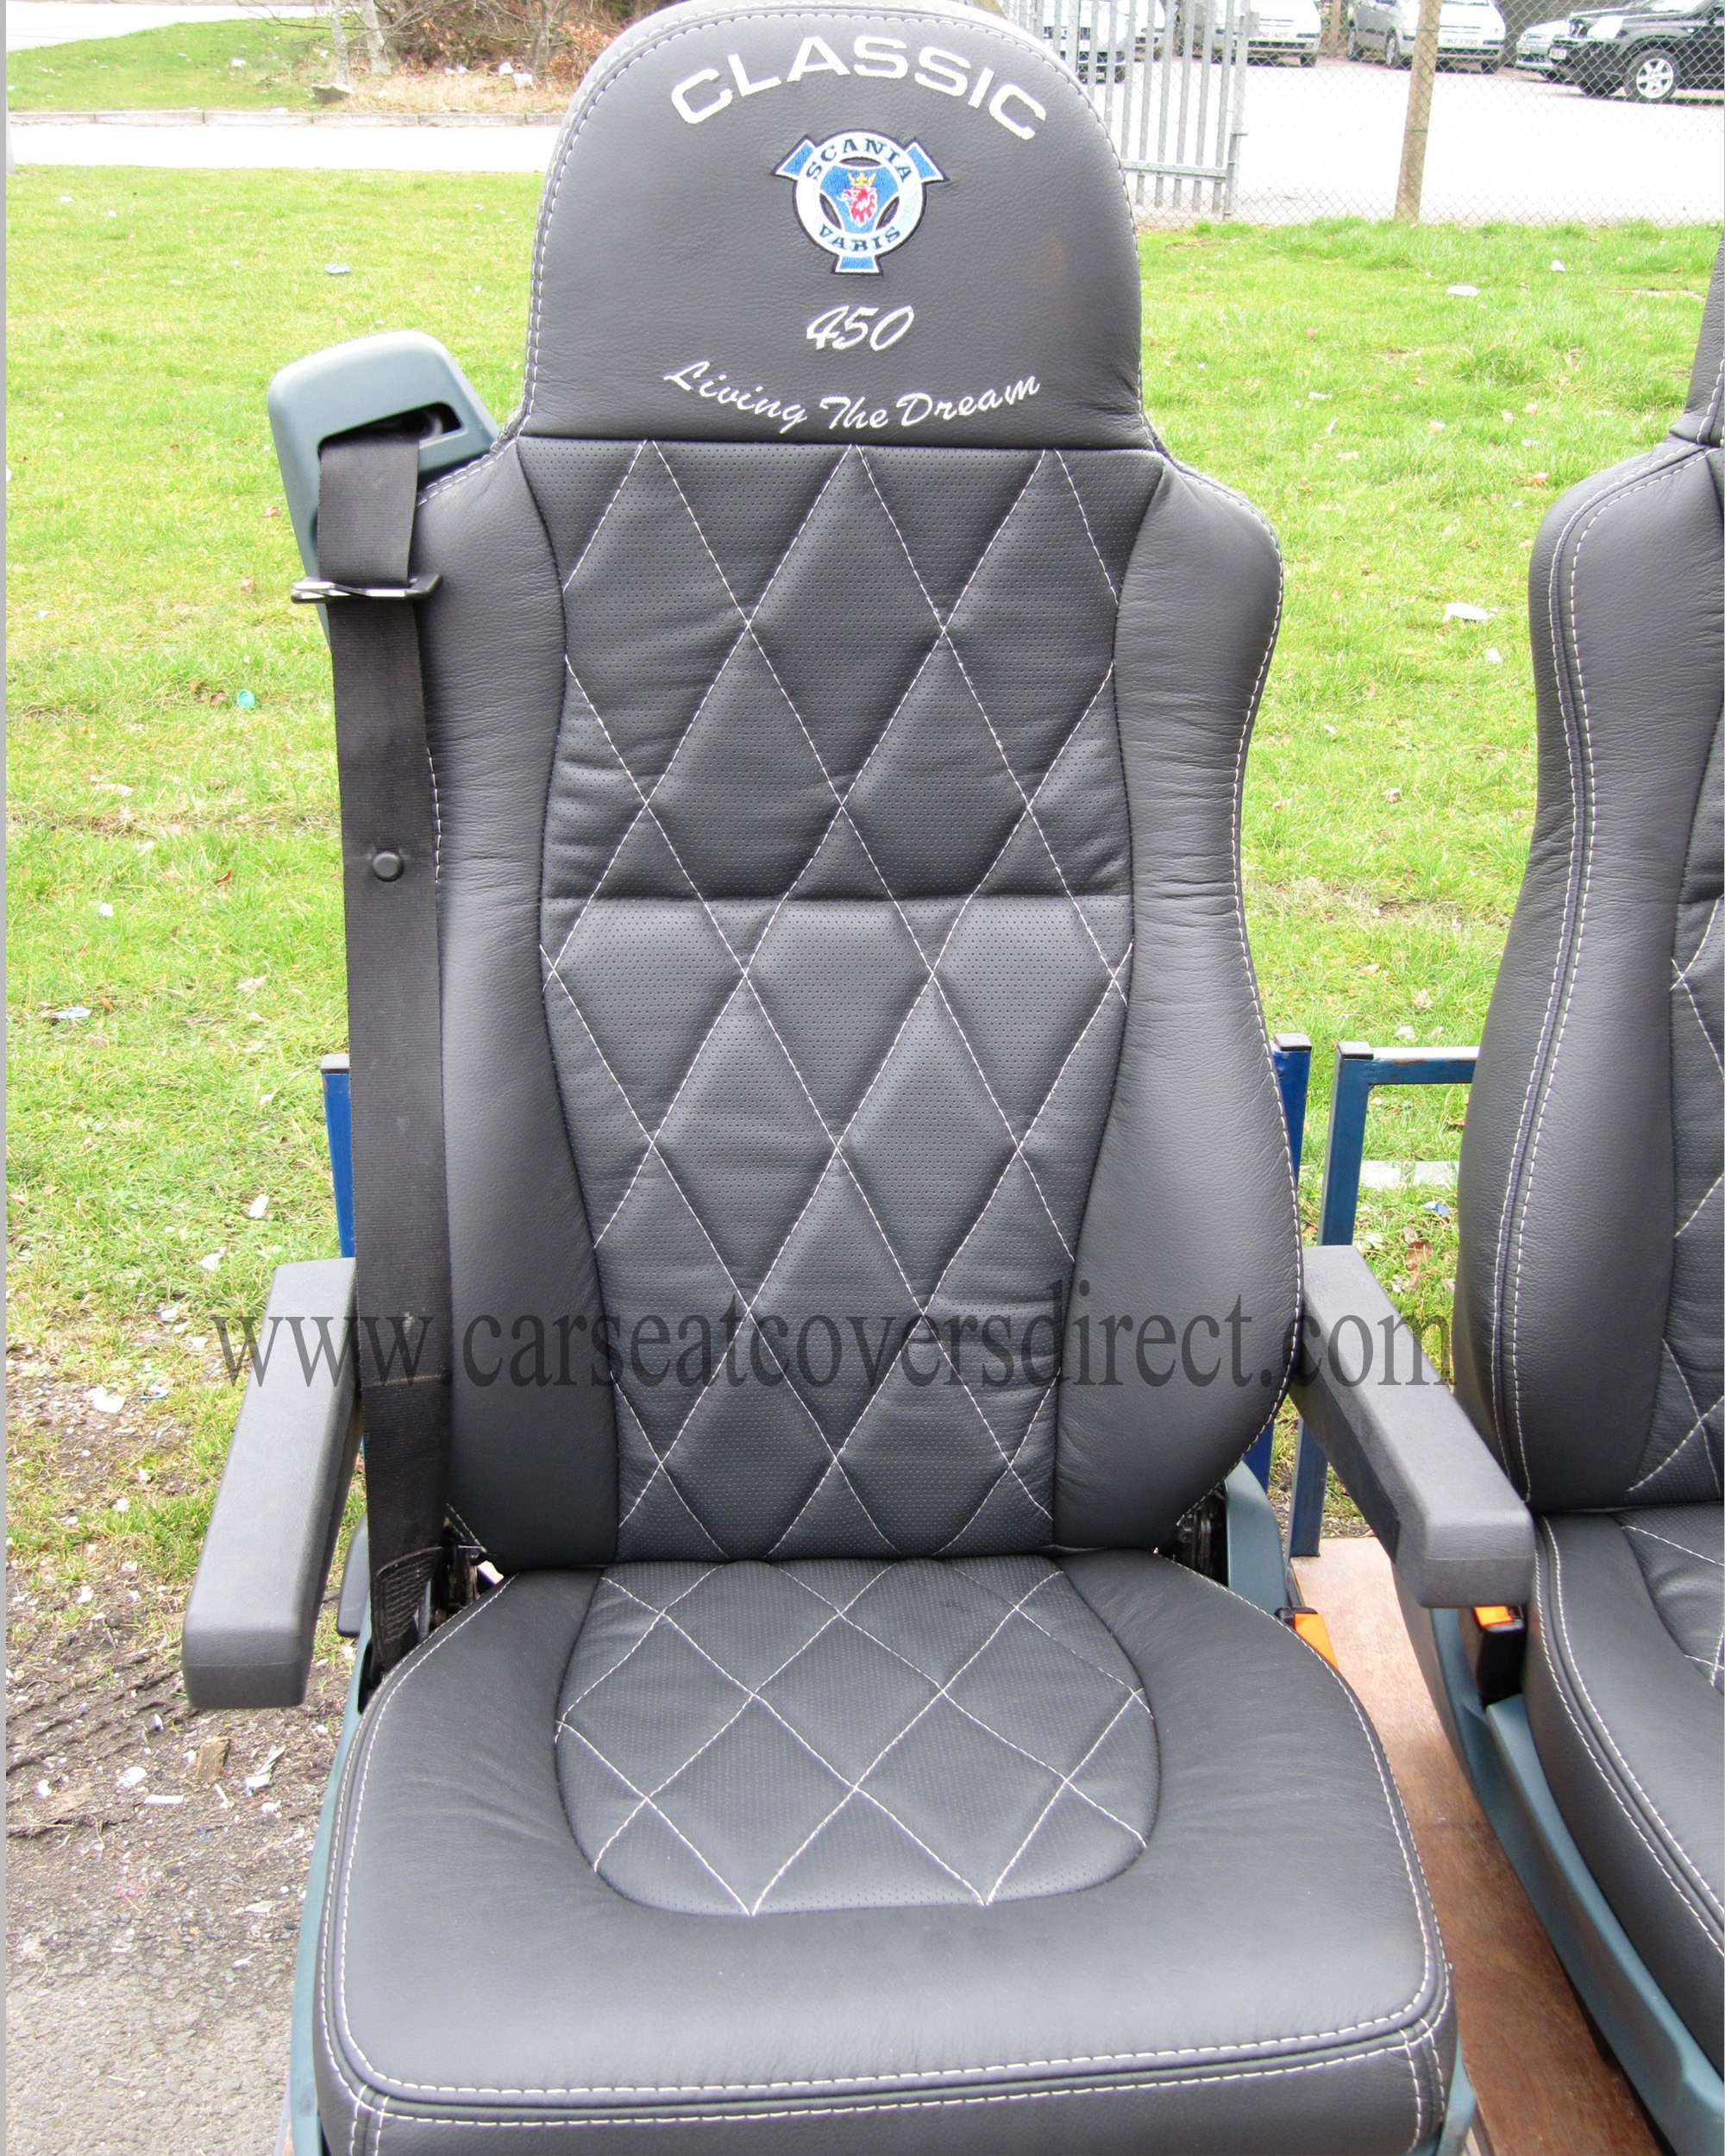 daf xf super space cab leather retrim click picture to see more images tailored truck and. Black Bedroom Furniture Sets. Home Design Ideas